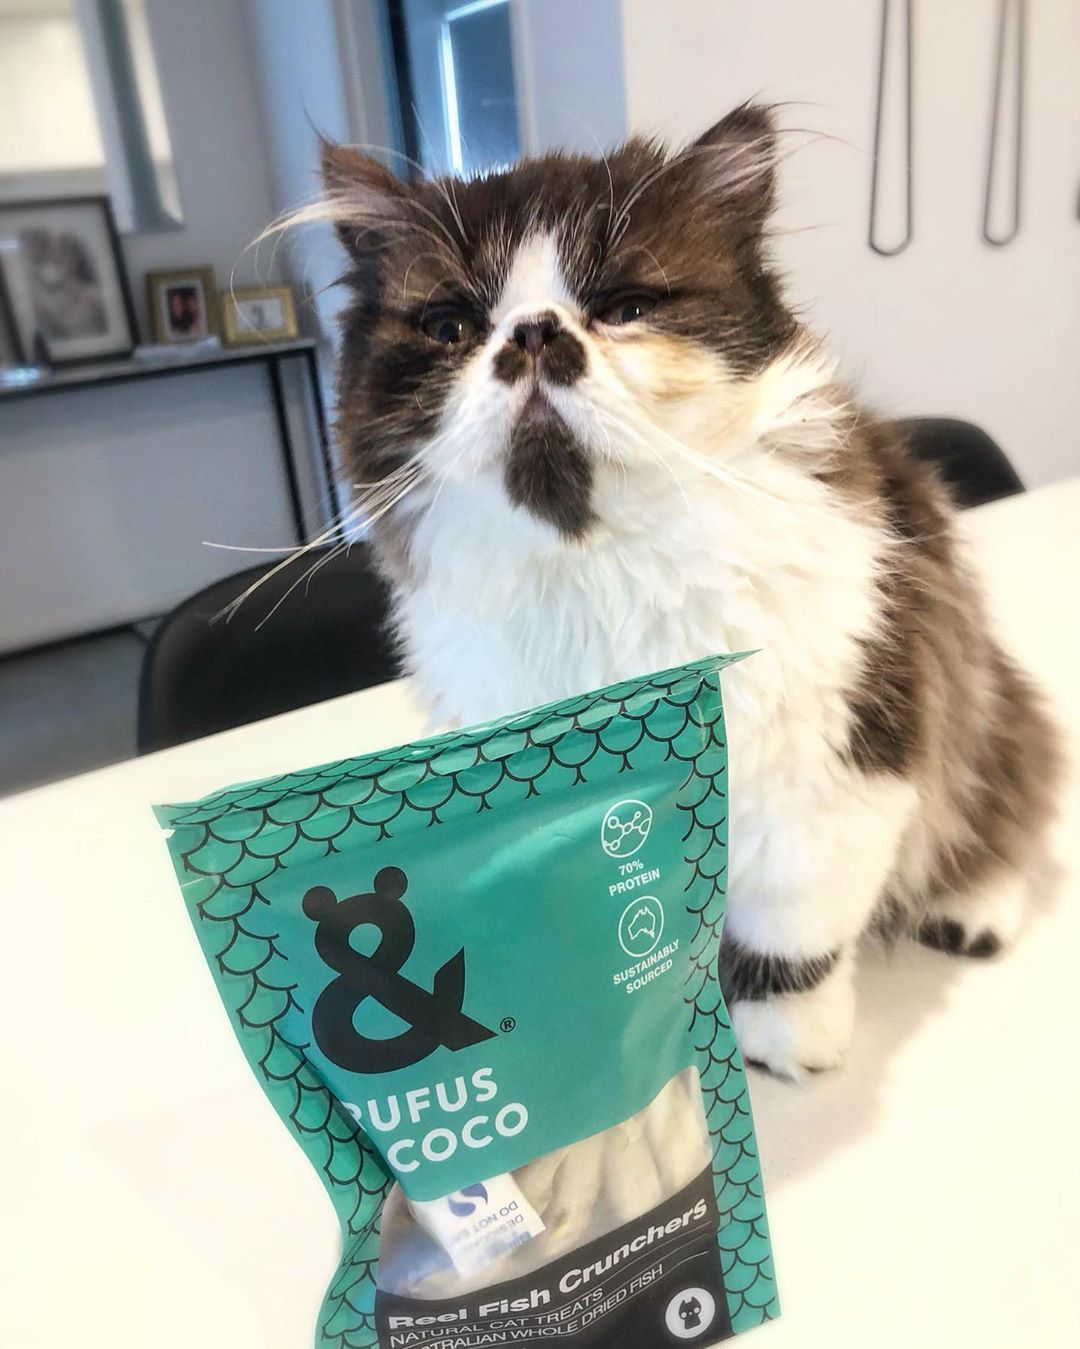 spades.the.persian.cat with Reel Fish cat treats by Rufus and Coco